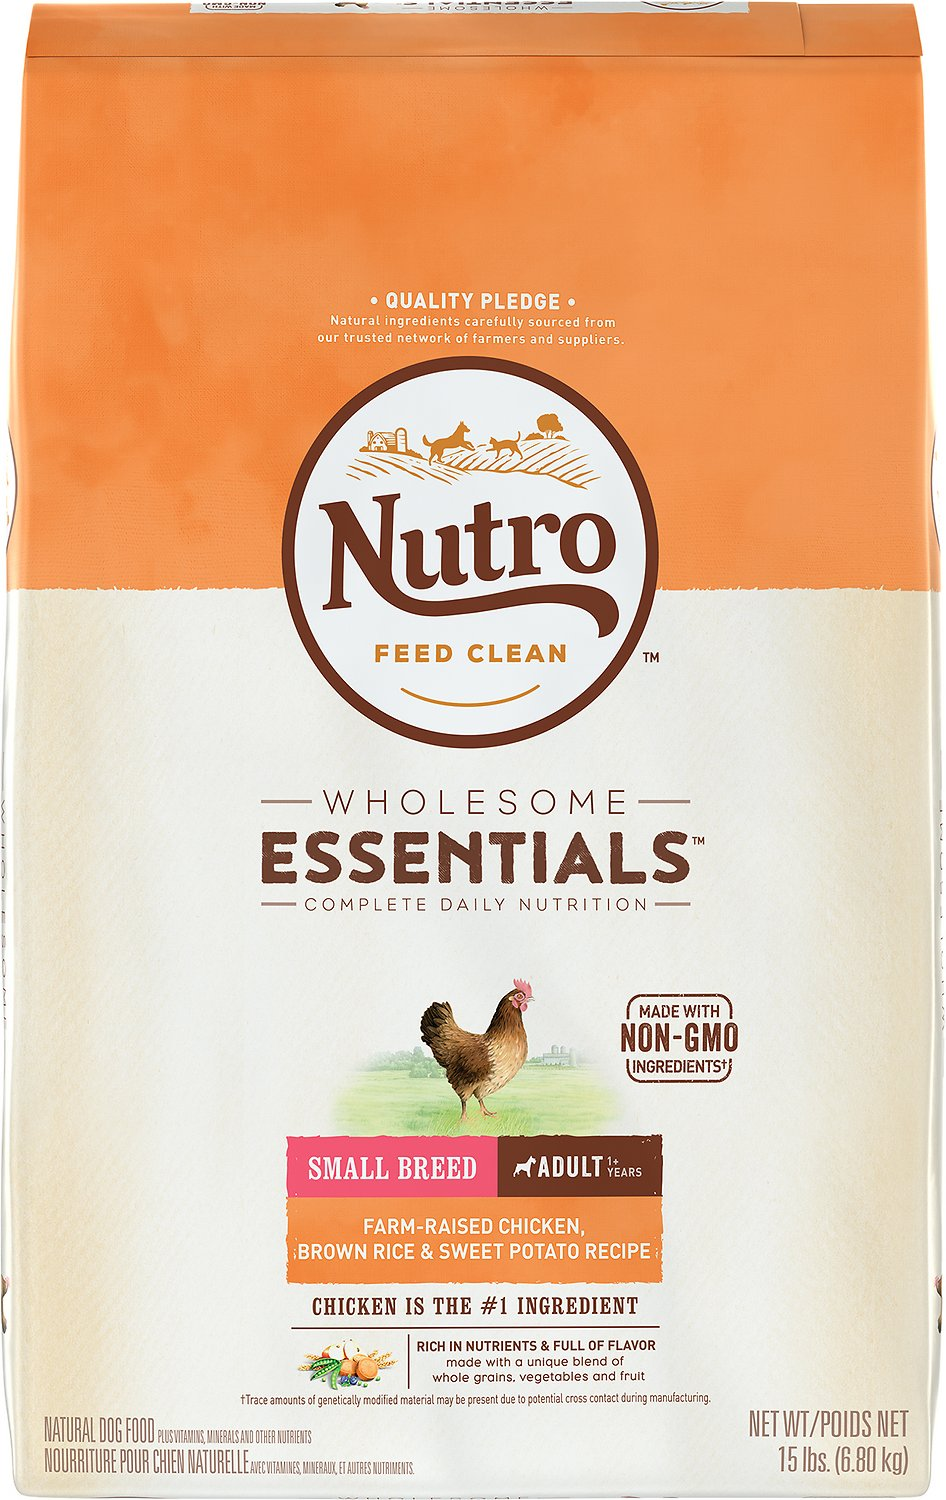 Nutro Wholesome Essentials Small Breed Adult Farm Raised Chicken, Brown Rice & Sweet Potato Recipe Dry Dog Food Image